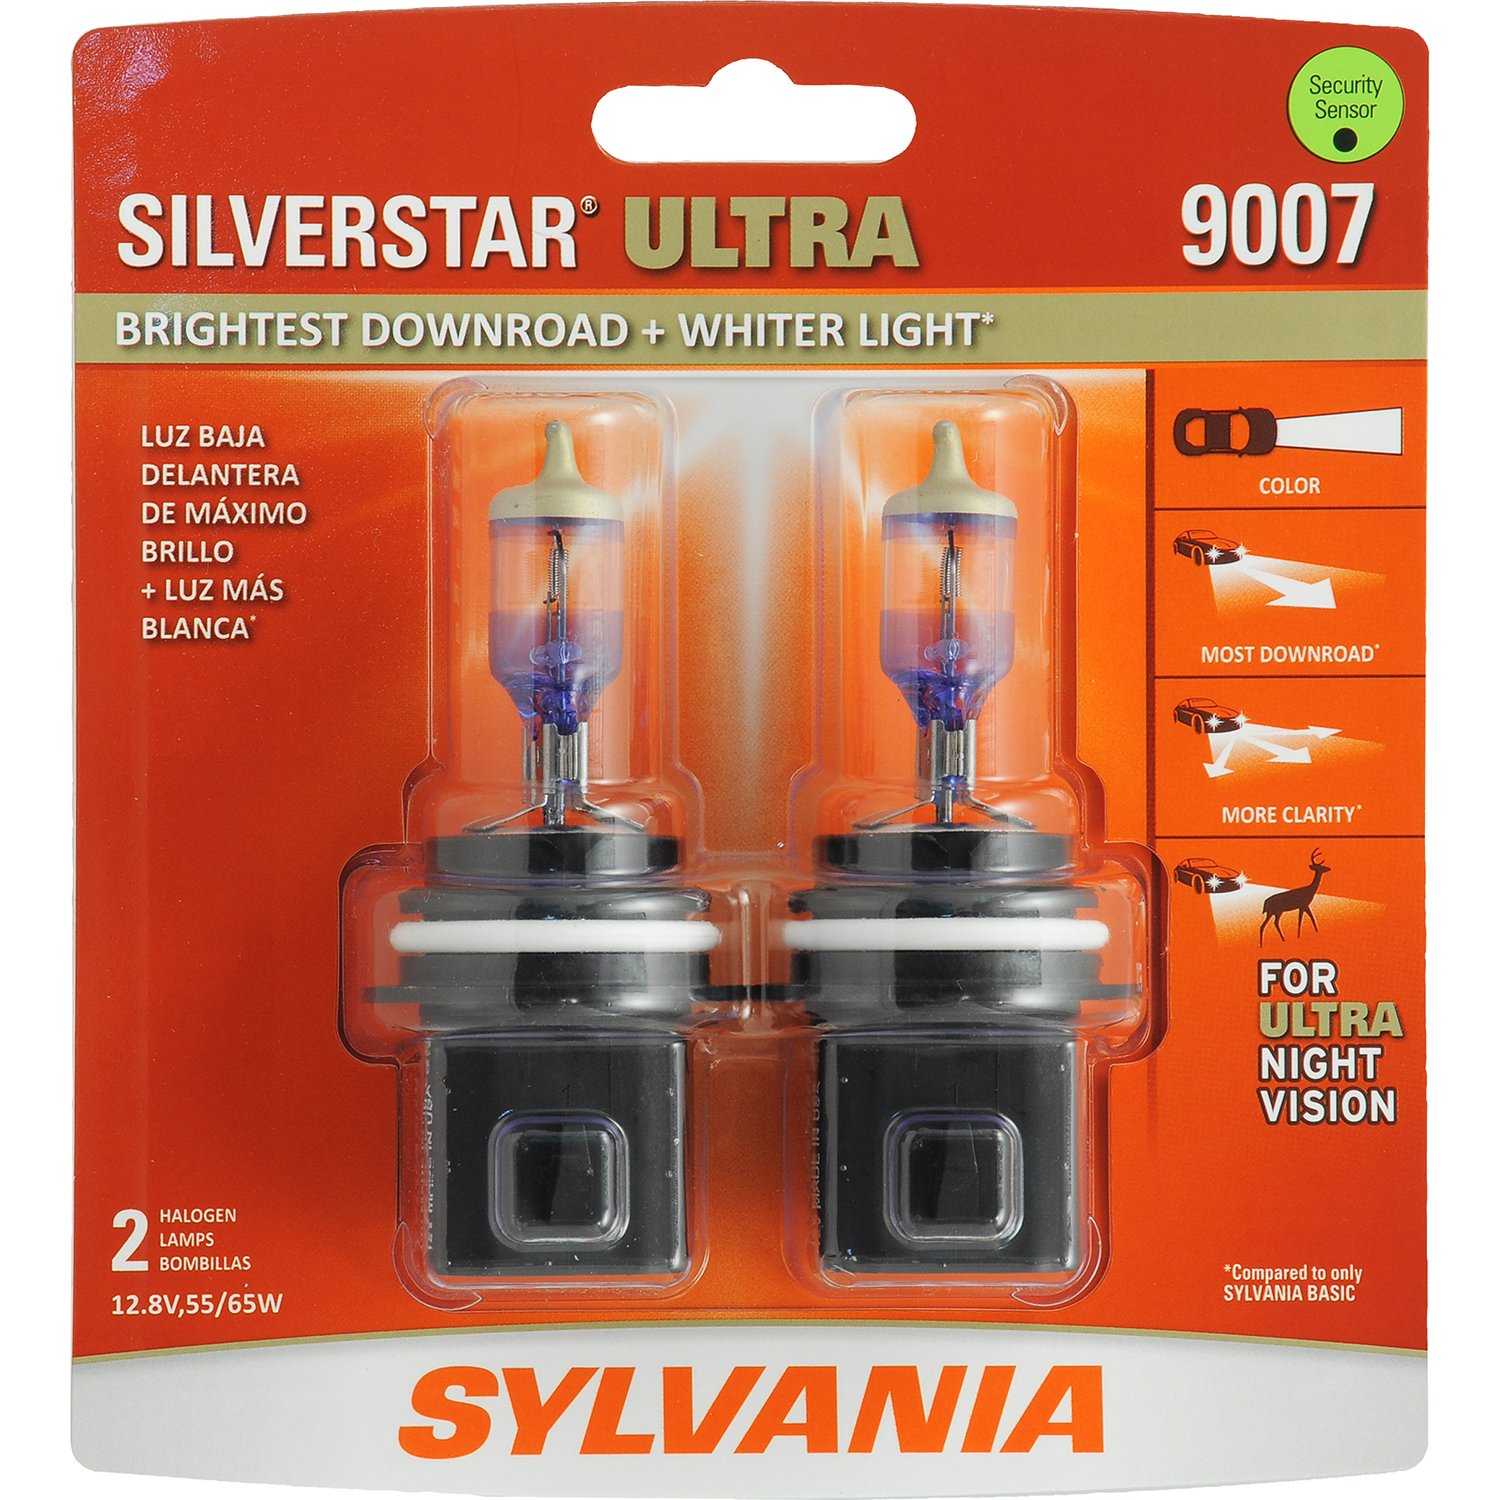 SYLVANIA 9007 SilverStar ULTRA Halogen Headlight Bulb, Pack of 2